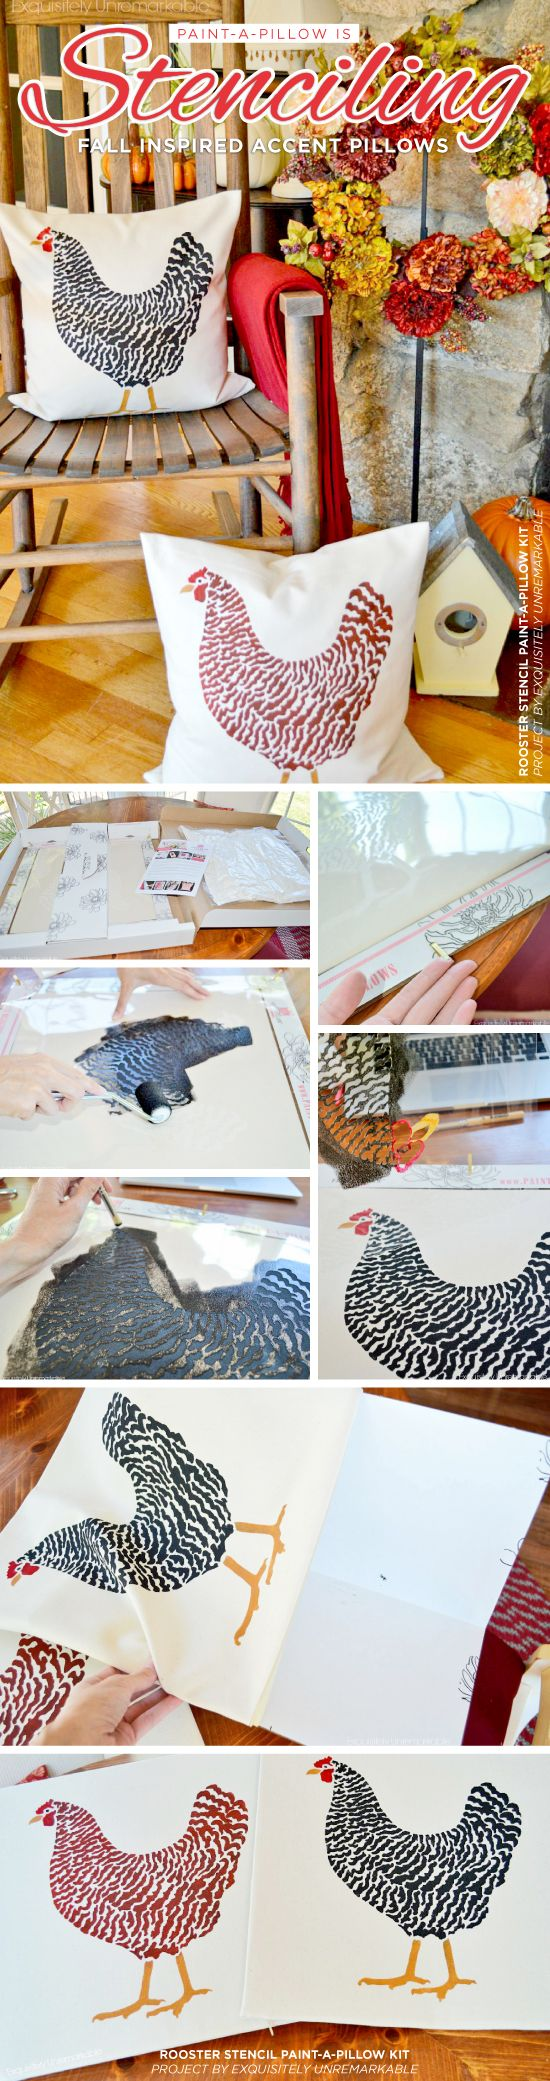 Cutting Edge Stencils shares how to make DIY fall inspired accent pillows using the Dominique Chicken Paint-A-Pillow stencil kit.    http://www.cuttingedgestencils.com/dominique-chicken-stenciled-paint-a-pillow-kit.html?utm_source=JCG&utm_medium=Pinterest&utm_campaign=Dominique%20Chicken%20DIY%20ACCENT%20PILLOW%20STENCIL%20KIT